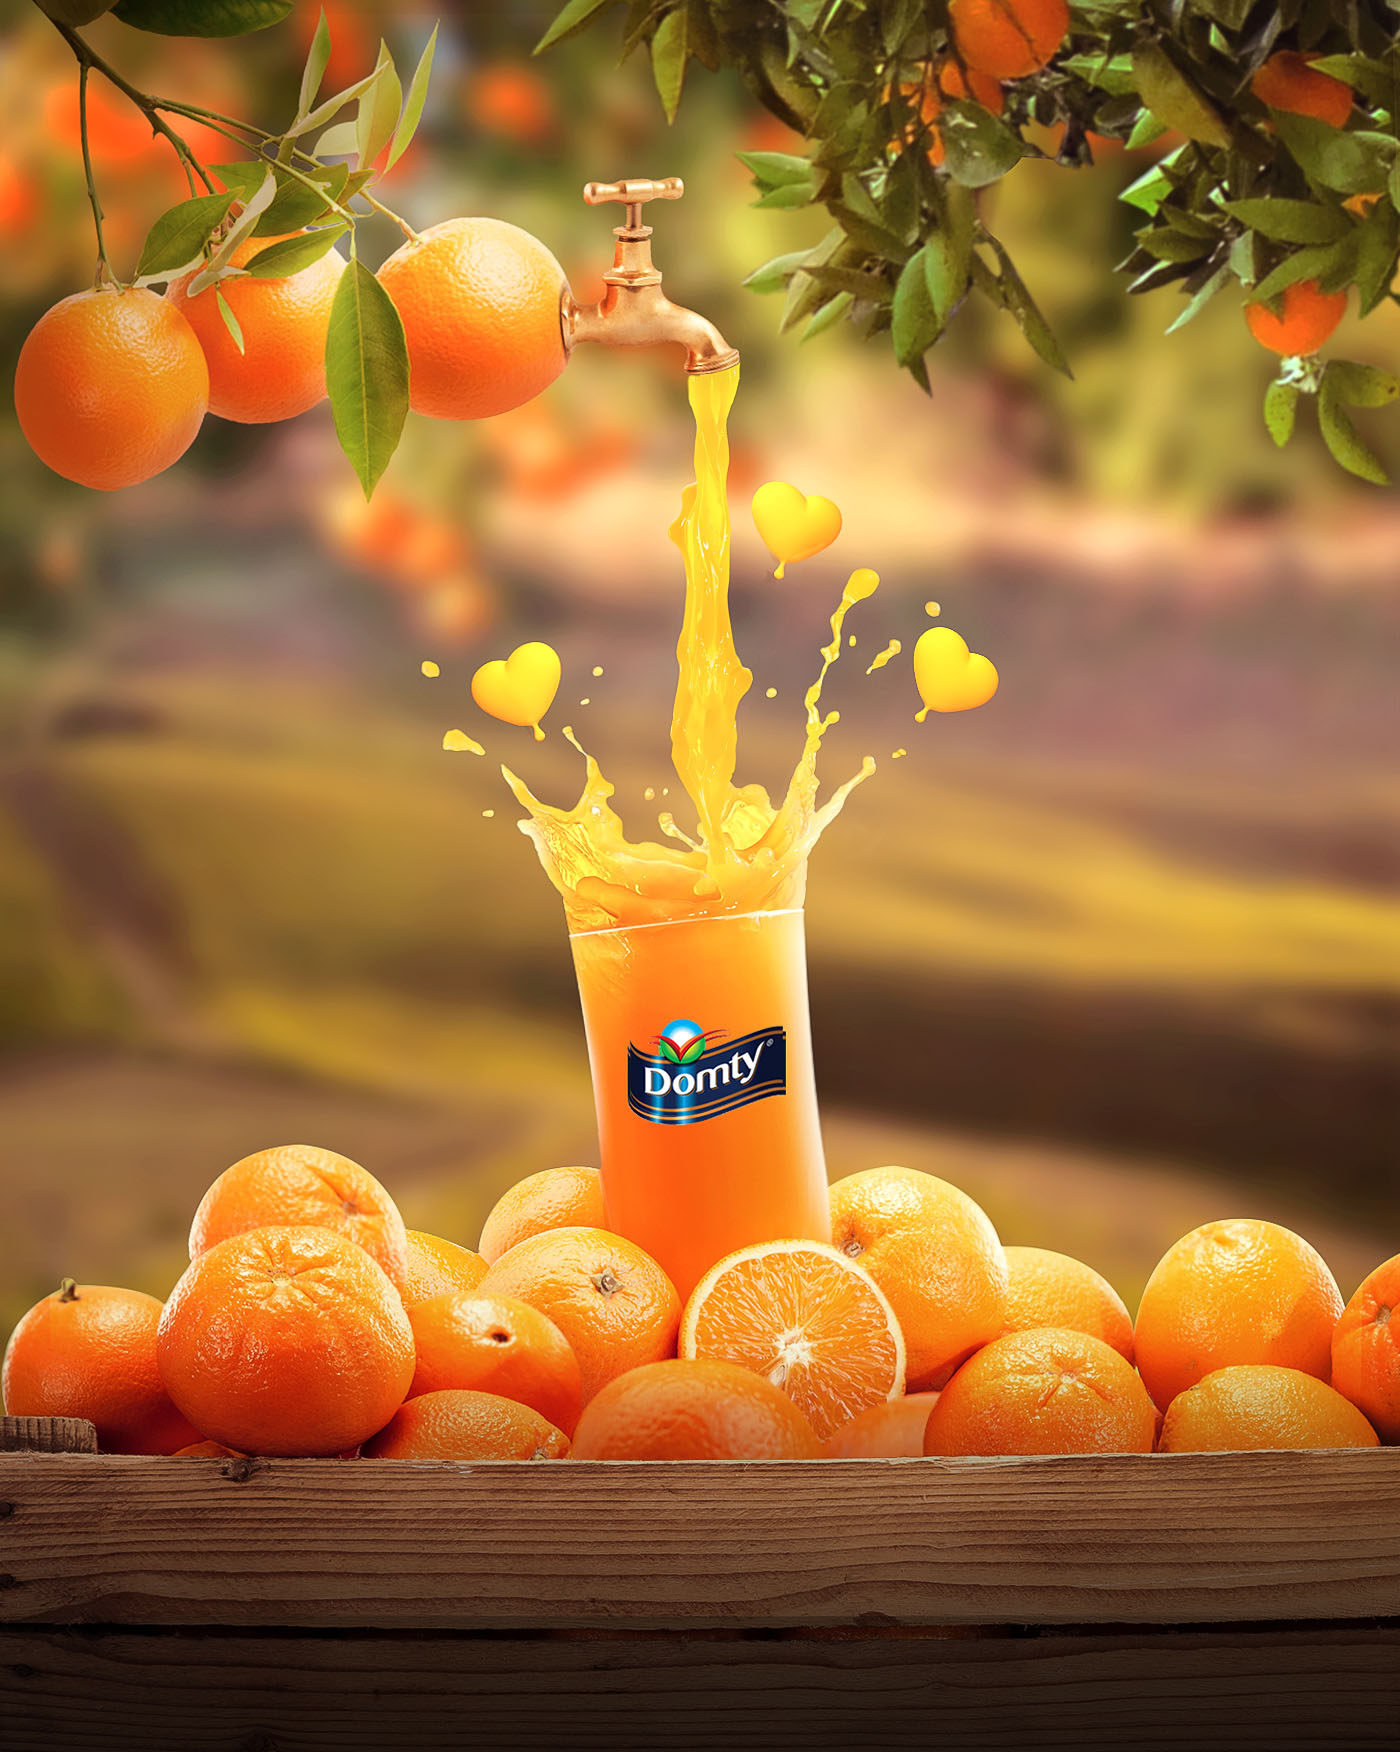 advertising design idea domty orange juice